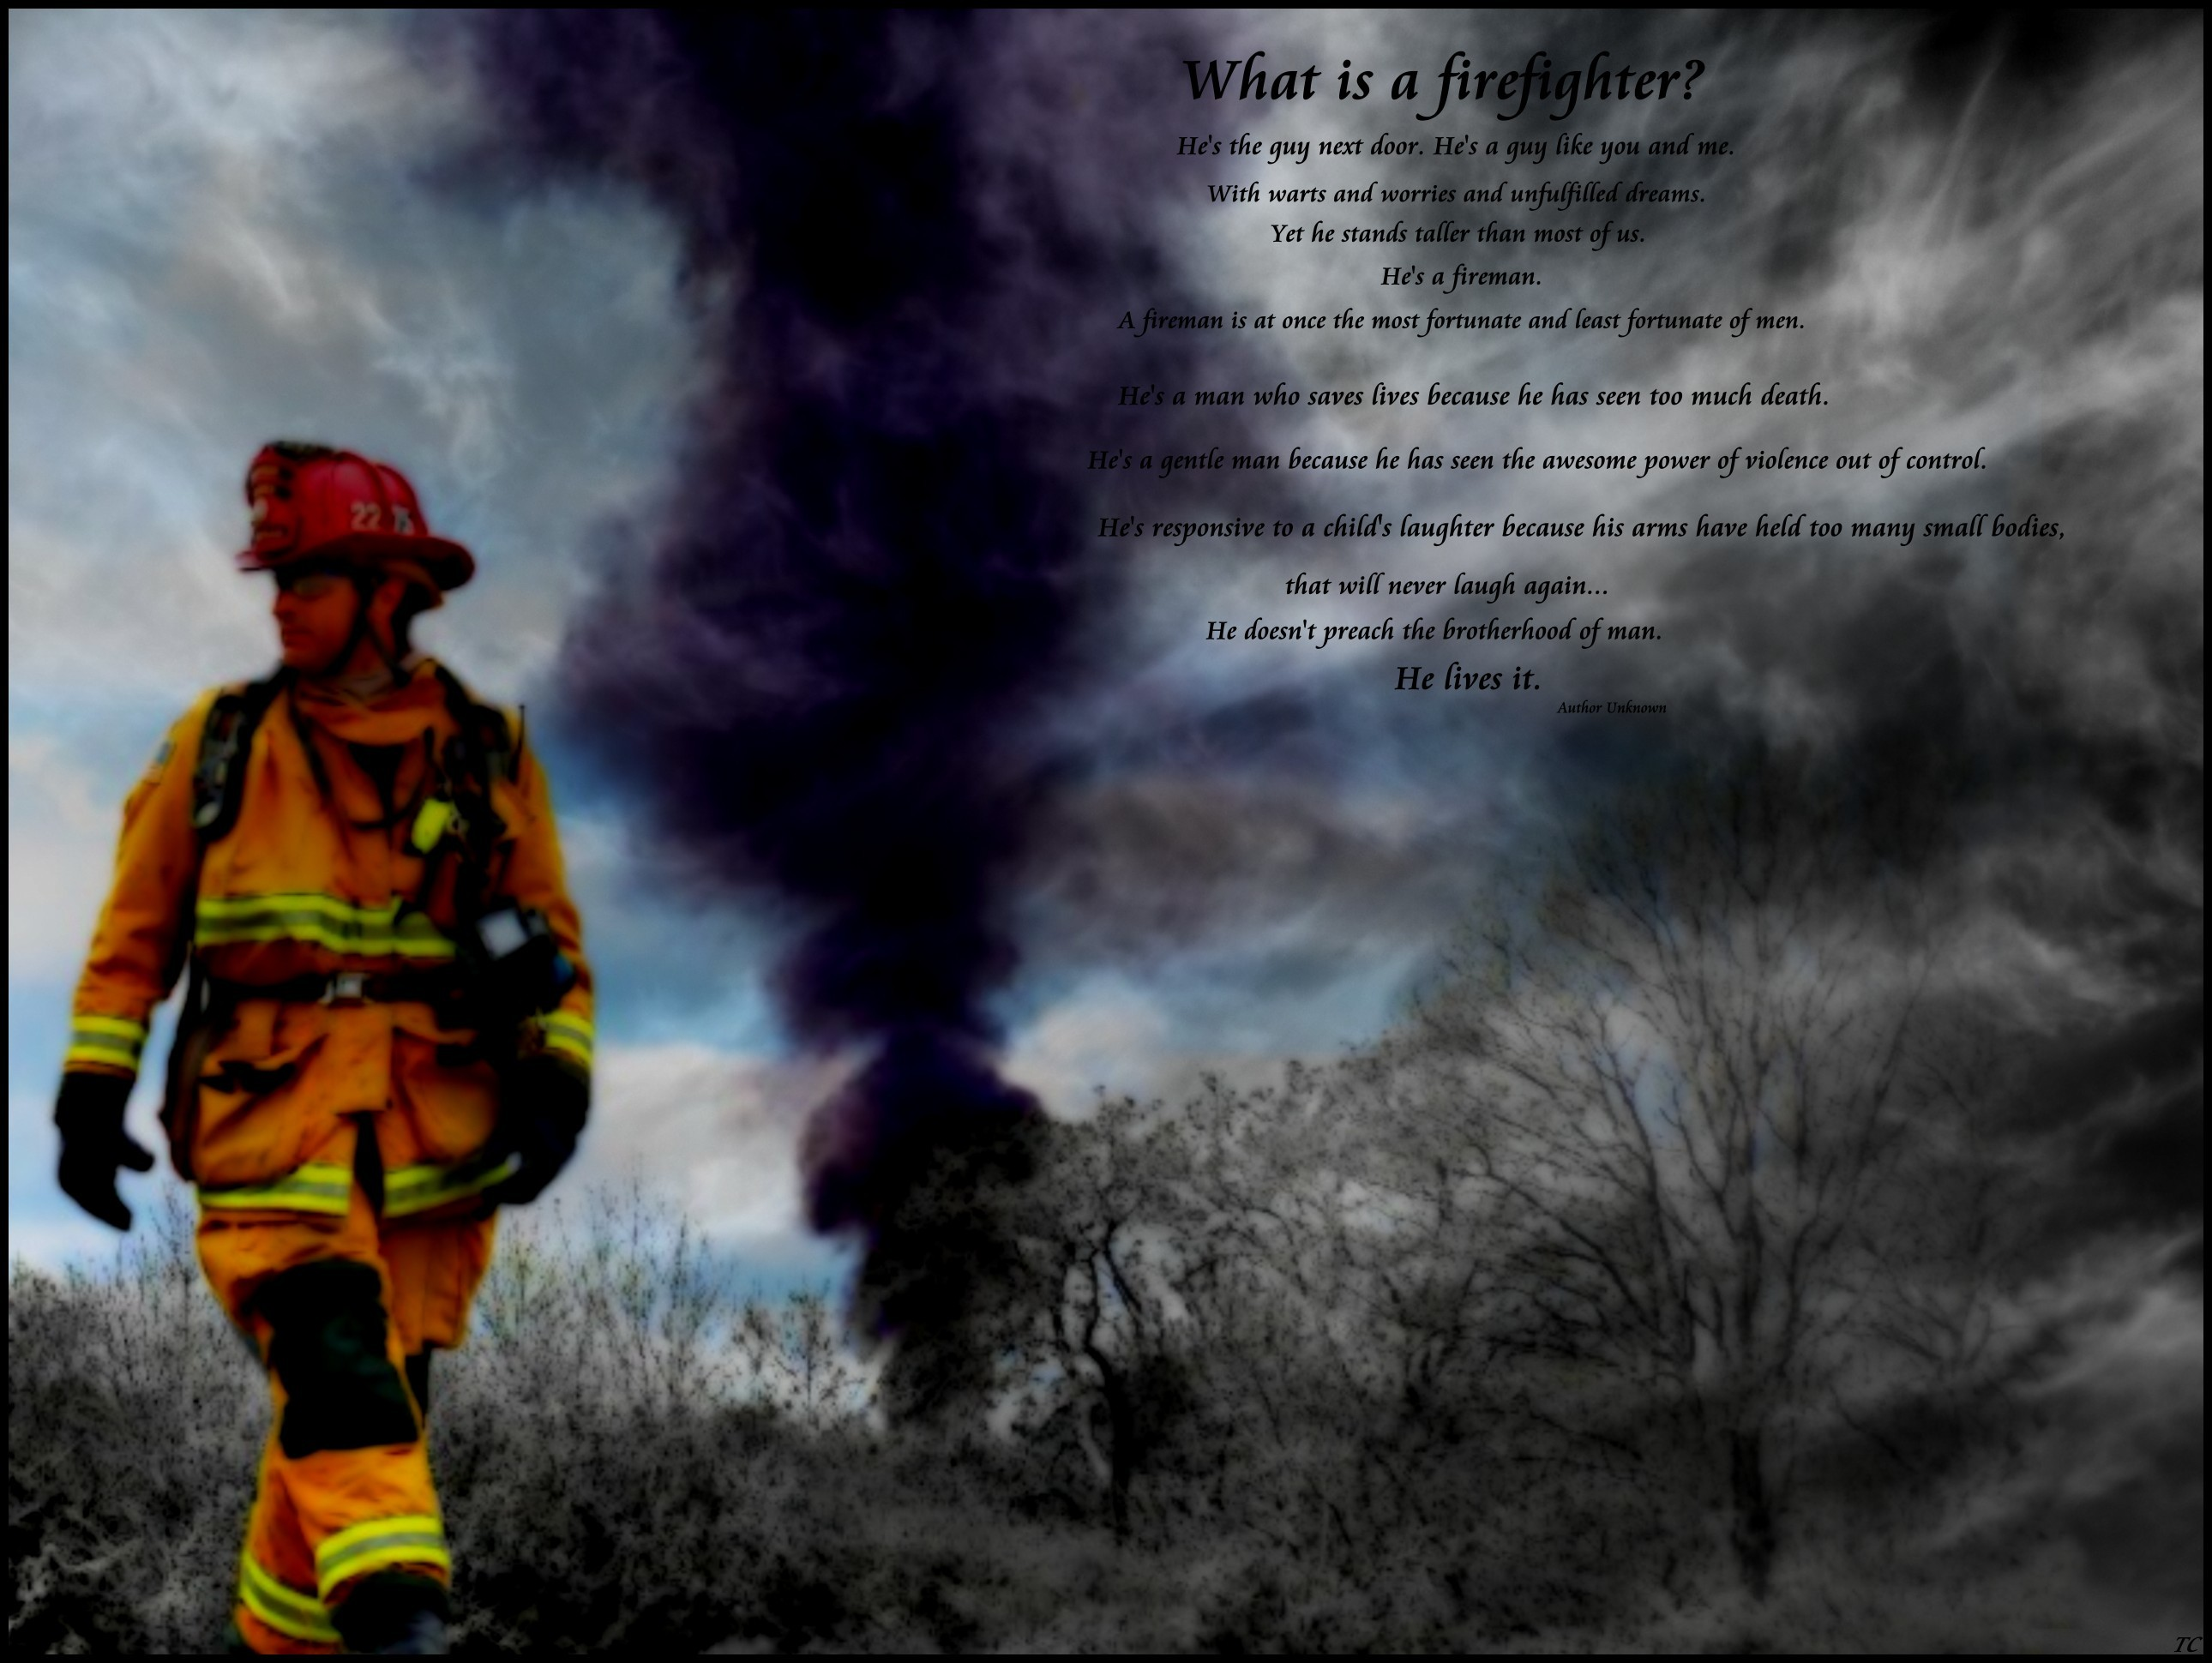 Firefighter Prayer Wallpaper Firefighter wallpaper